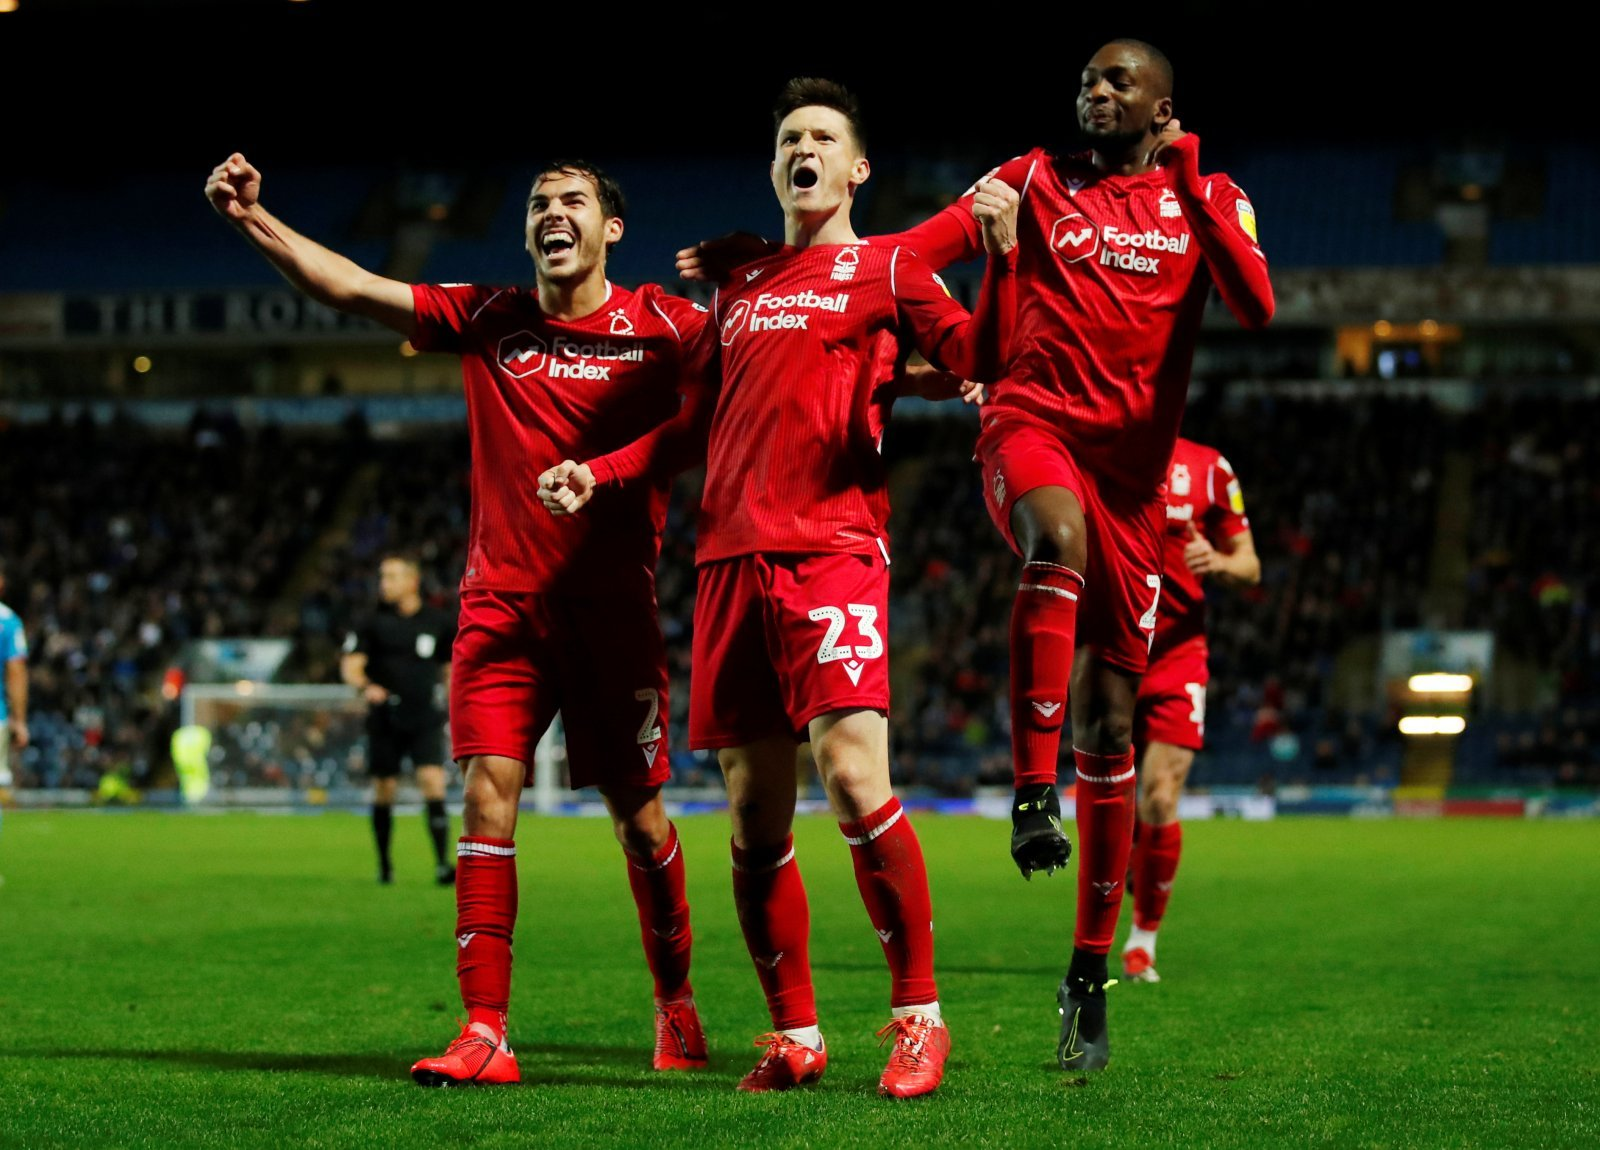 Nottingham Forest: Fans praise team after getting a draw away from home